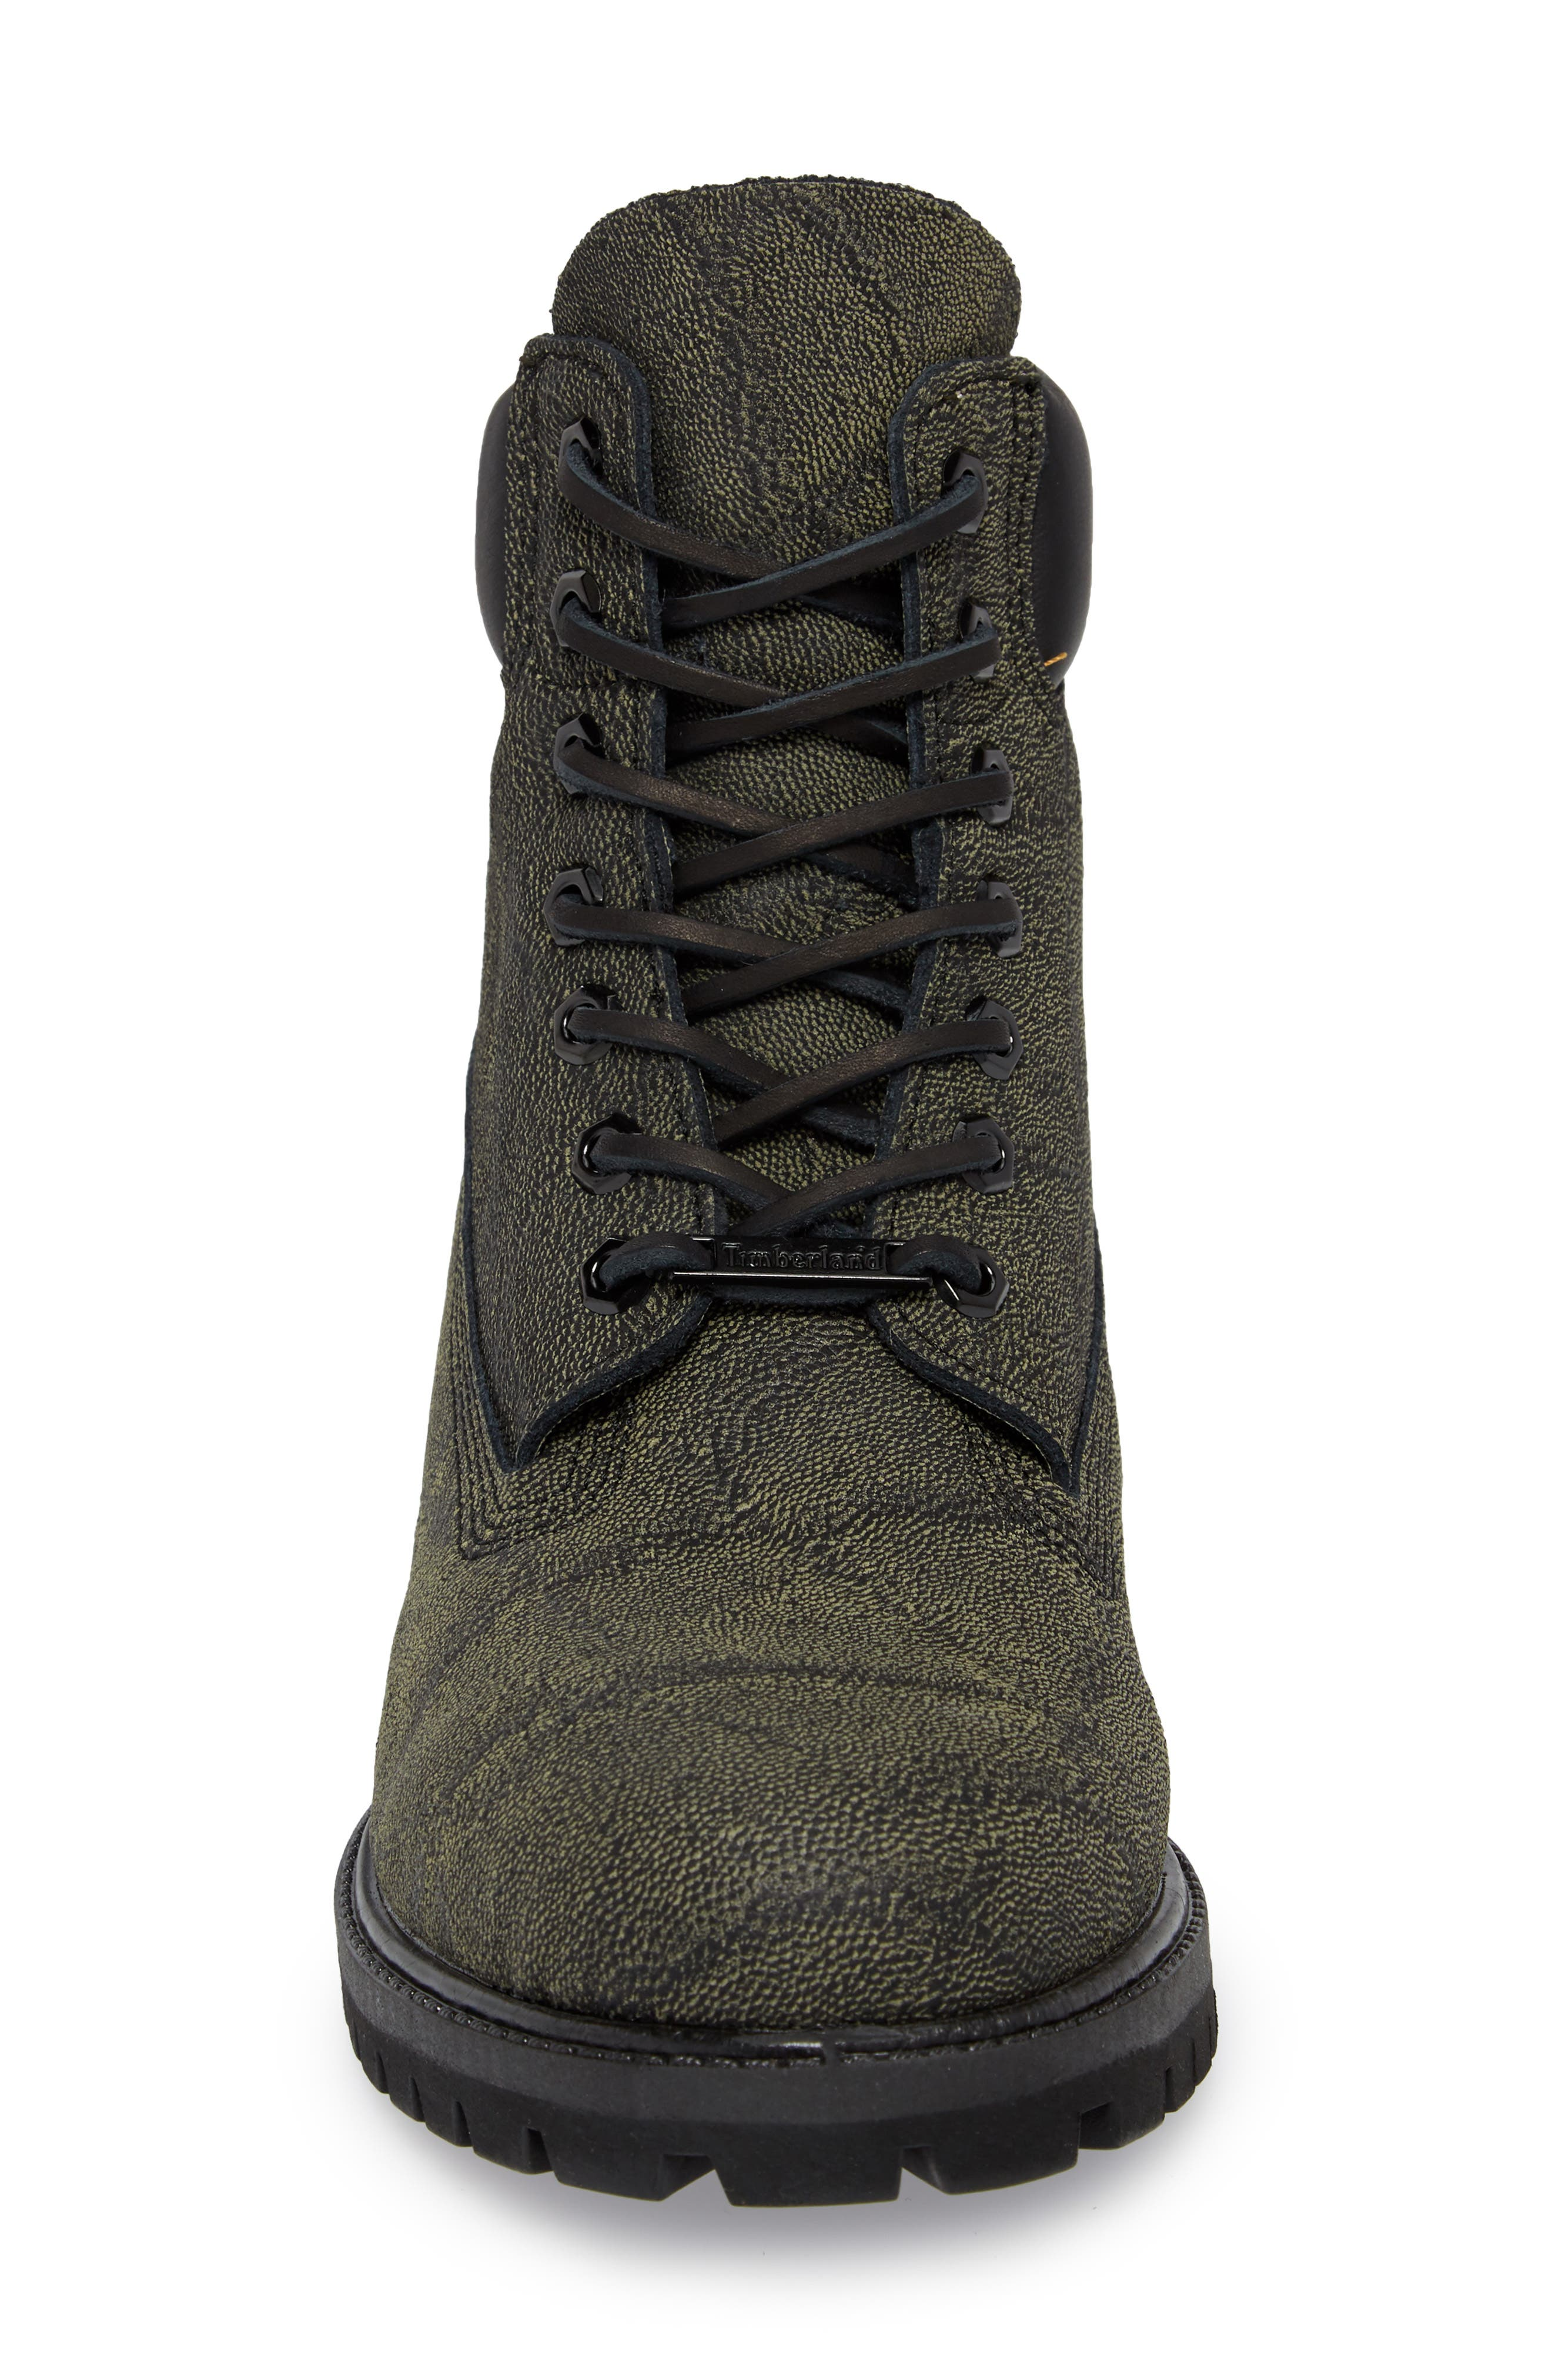 Premium Mammoth Waterproof PrimaLoft<sup>®</sup> Insulated Boot,                             Alternate thumbnail 4, color,                             Black/ Helcor